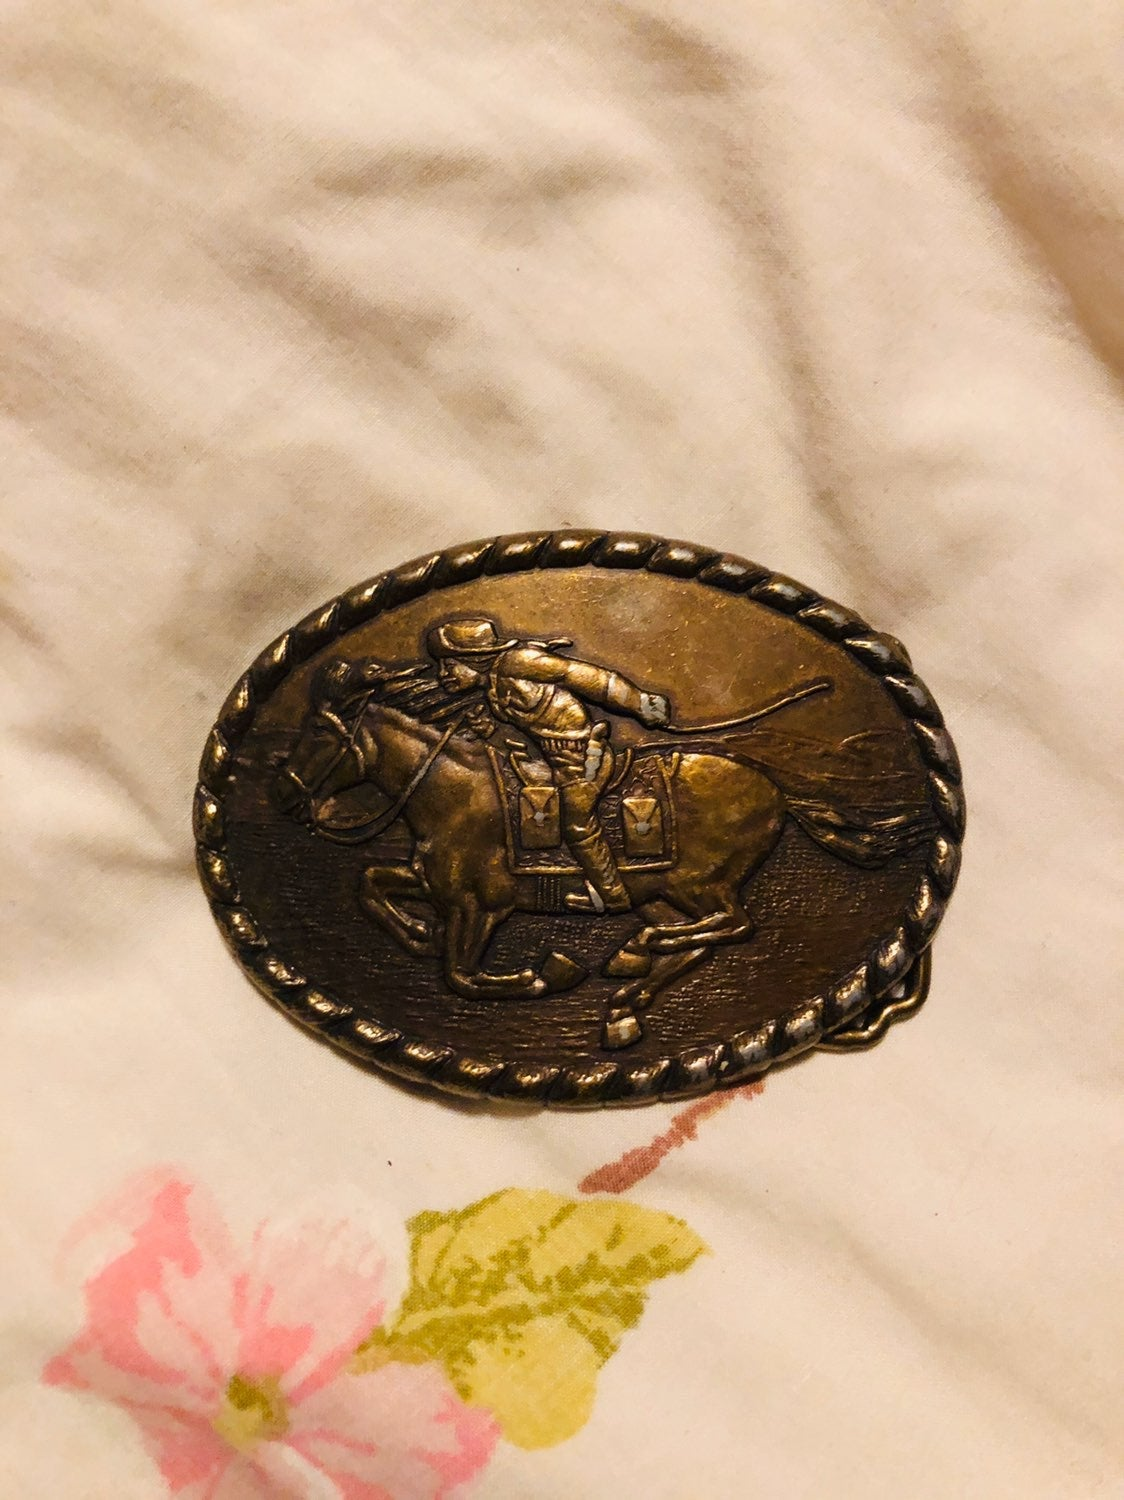 Pony express belt buckle